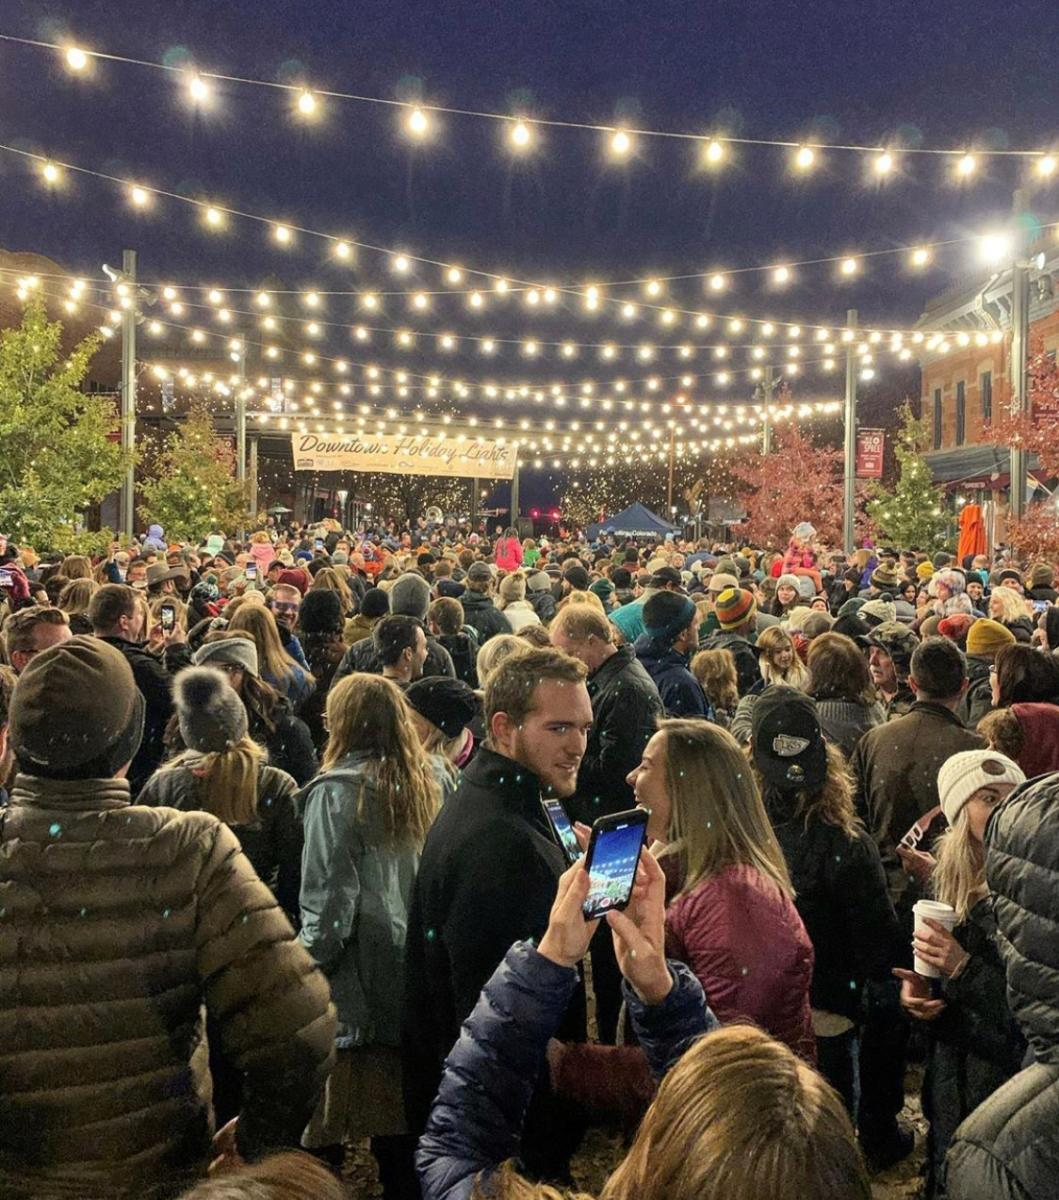 Downtown Lighting Festival